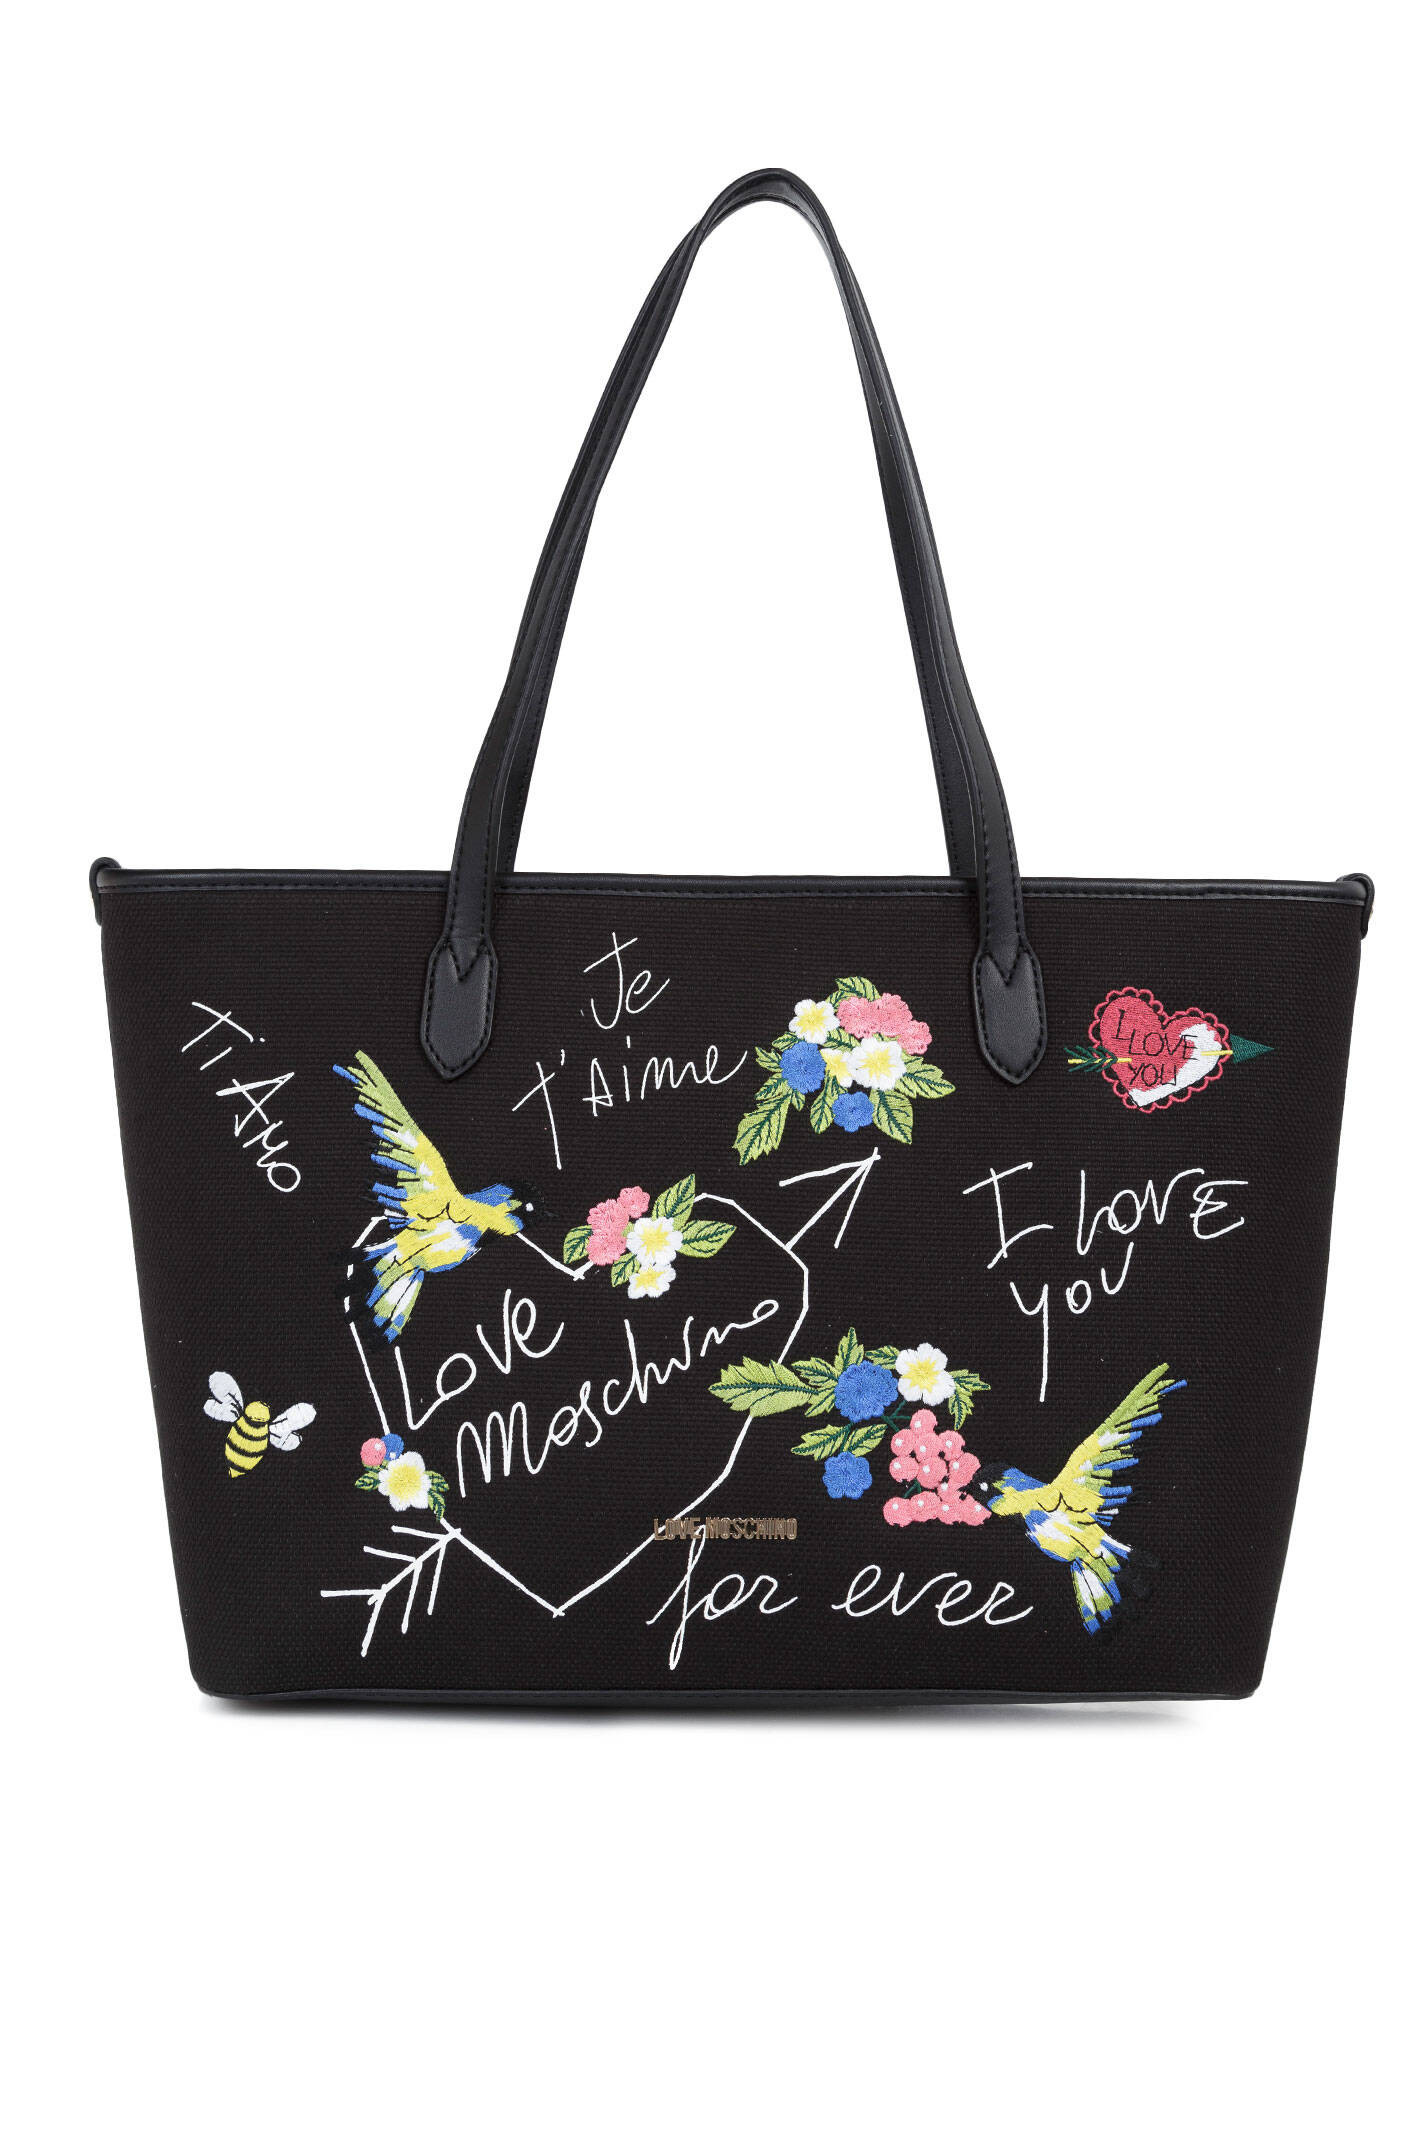 shopper bag love moschino black bags. Black Bedroom Furniture Sets. Home Design Ideas